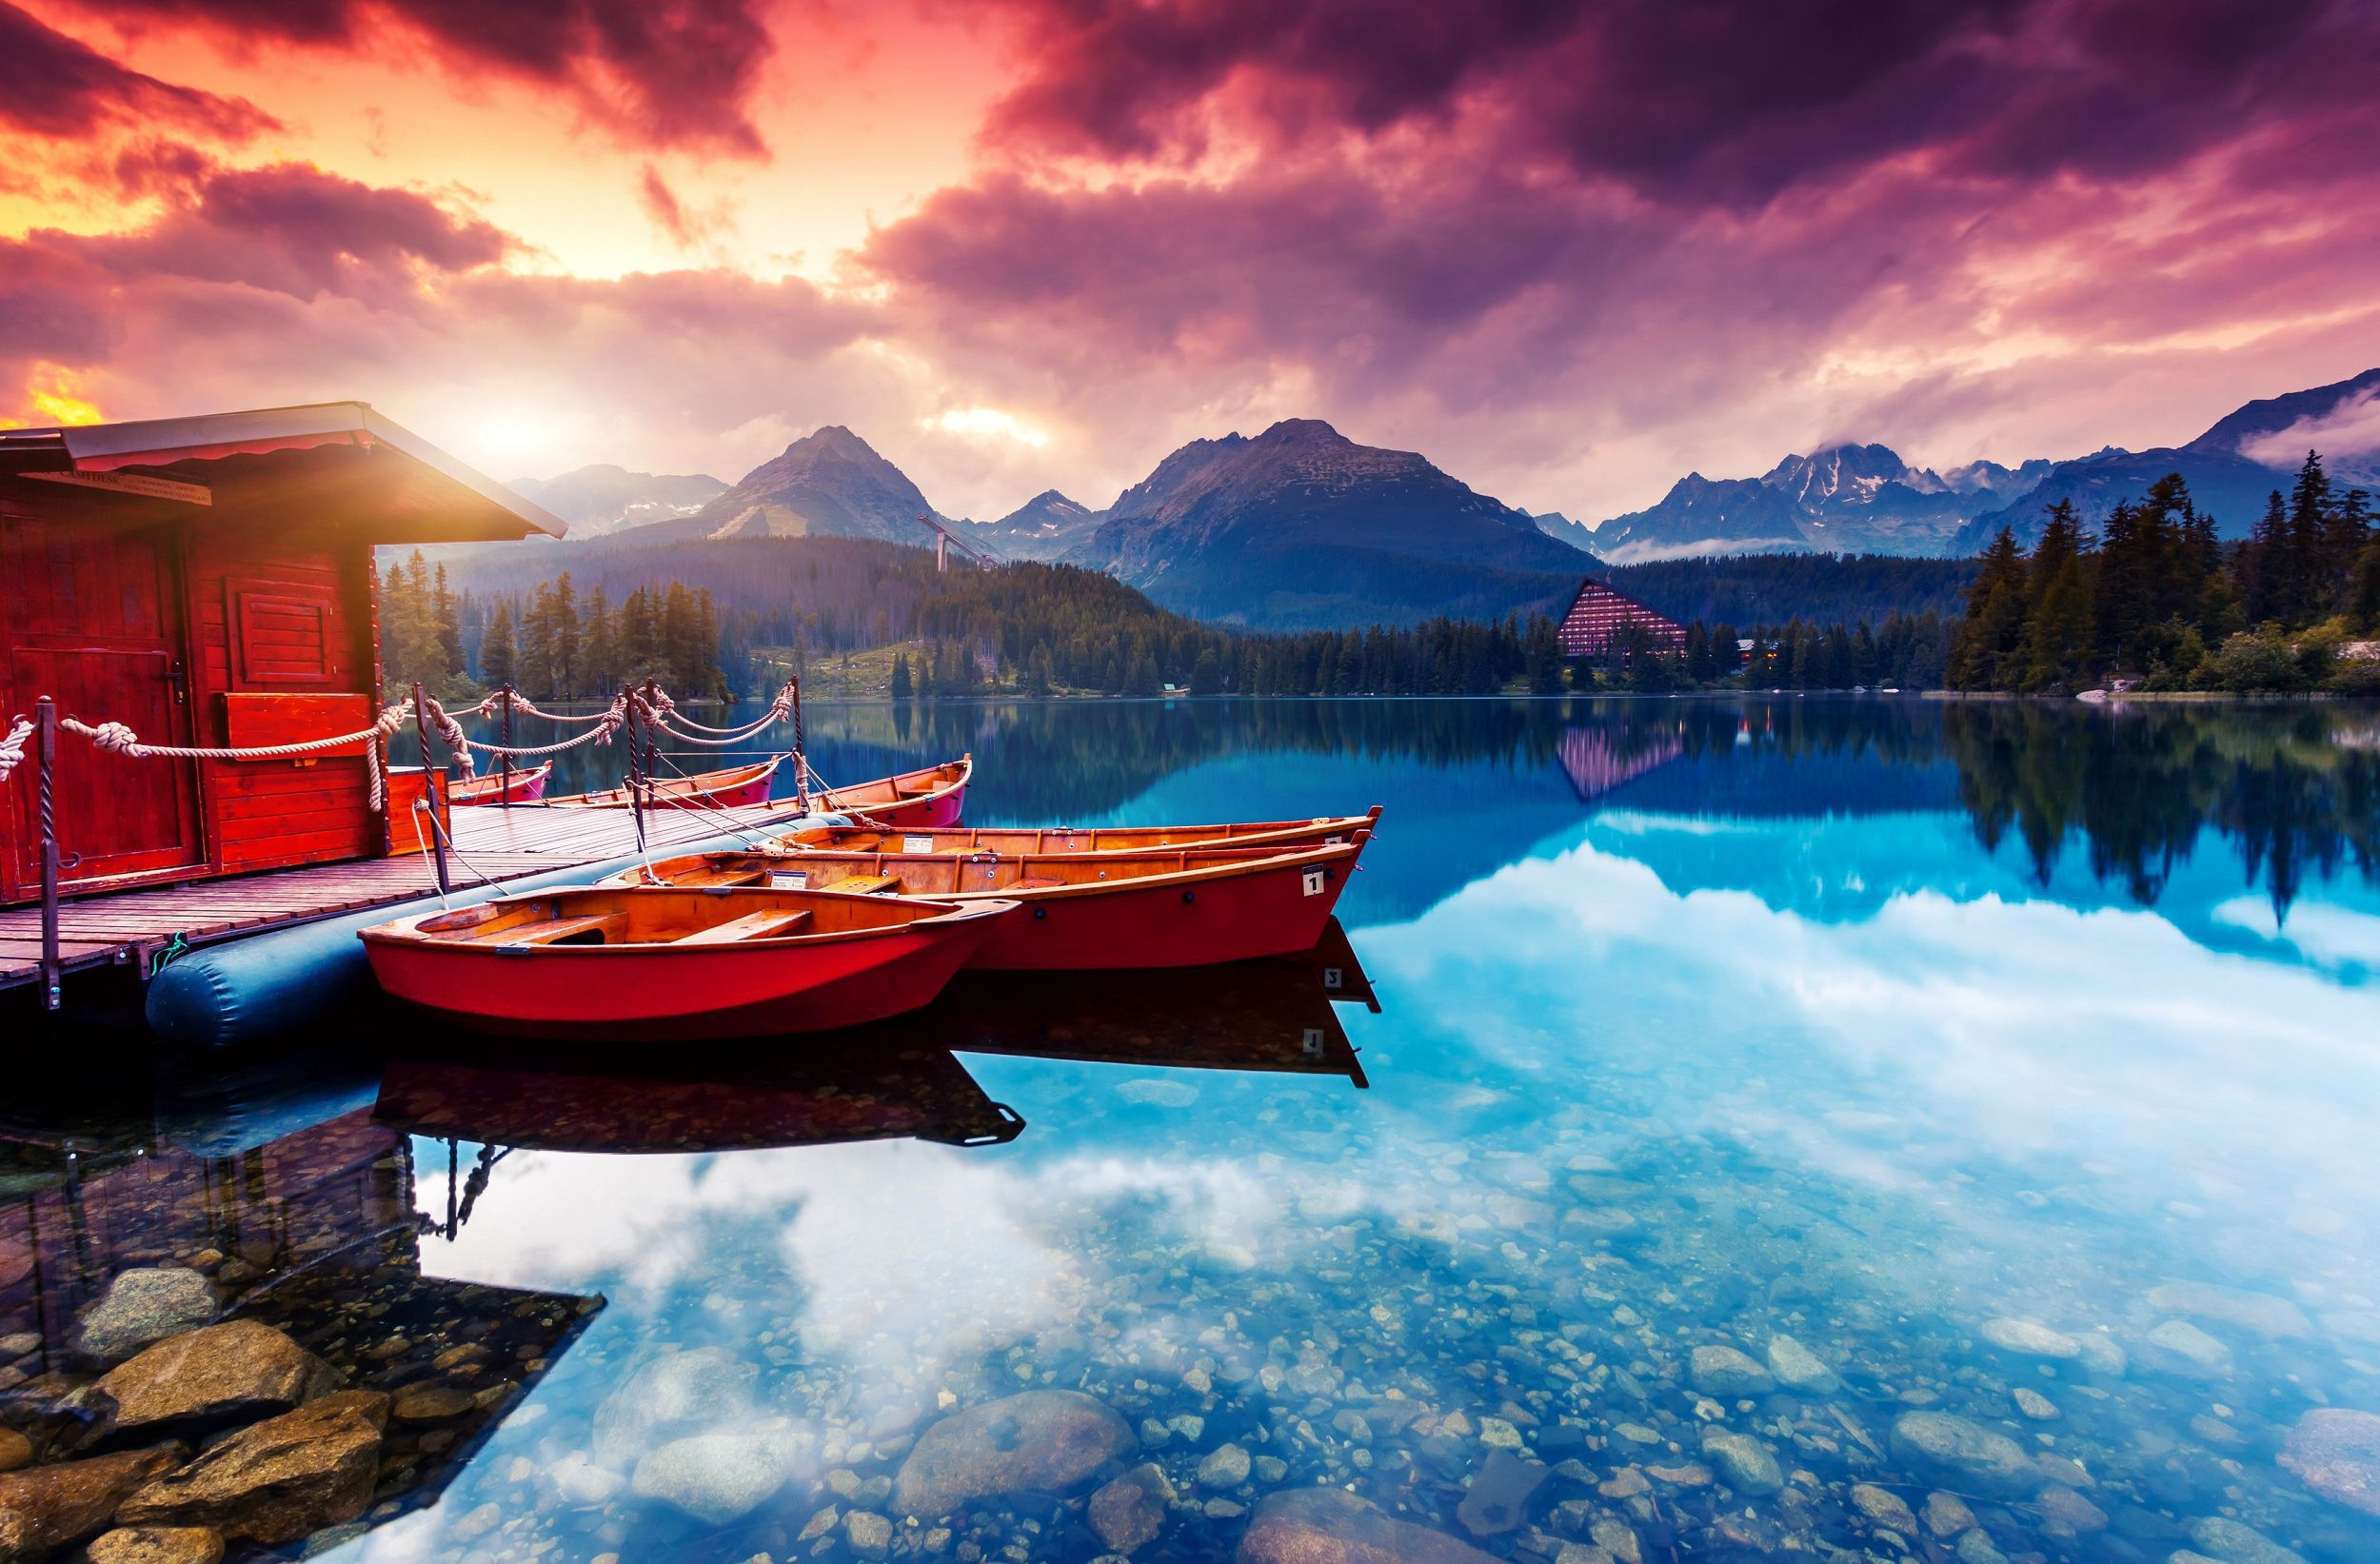 Boat High Definition Wallpapers